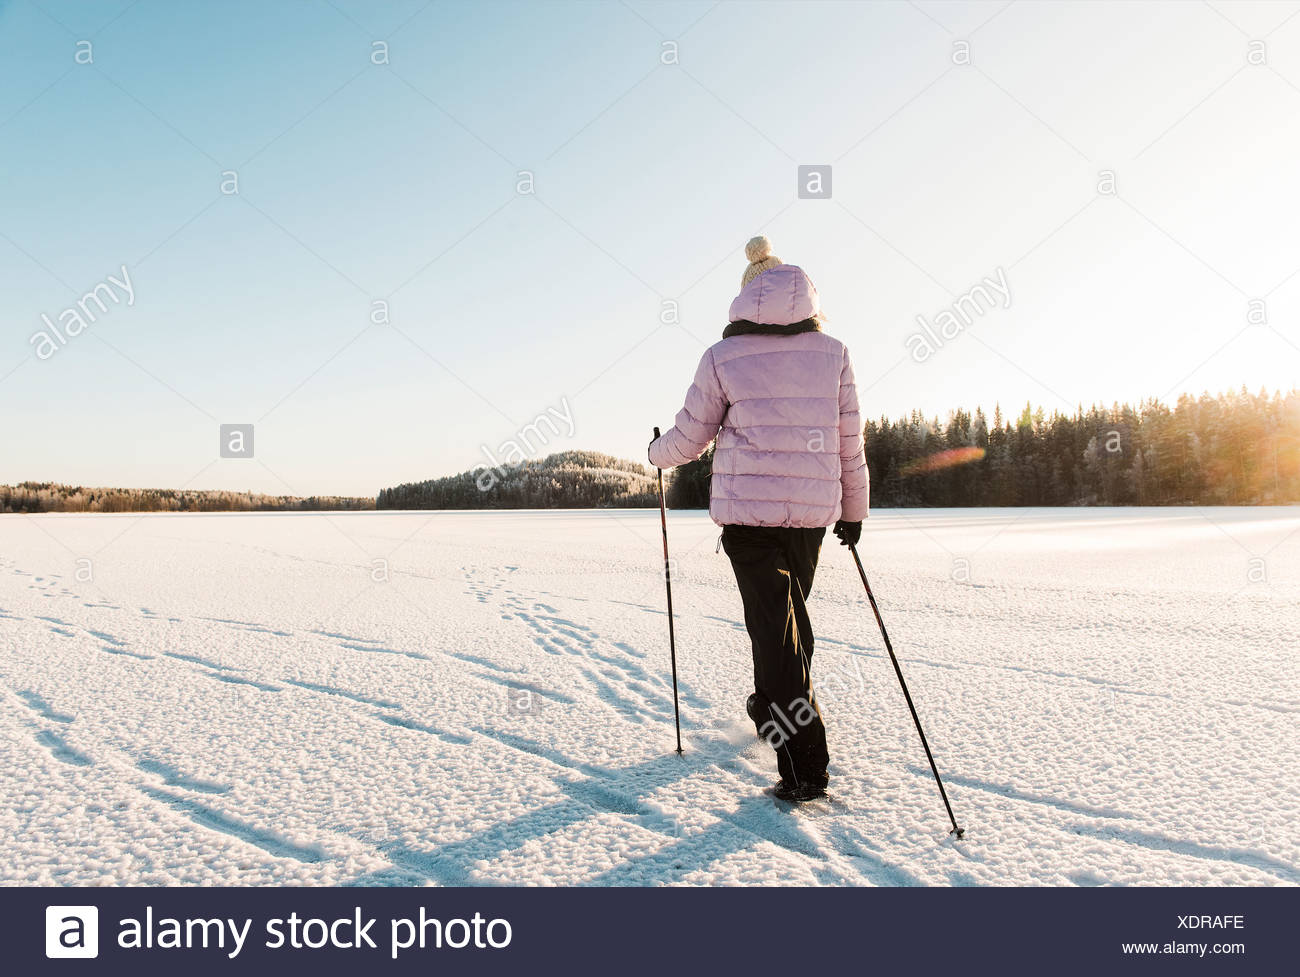 Woman nordic walking through snow covered field - Stock Image